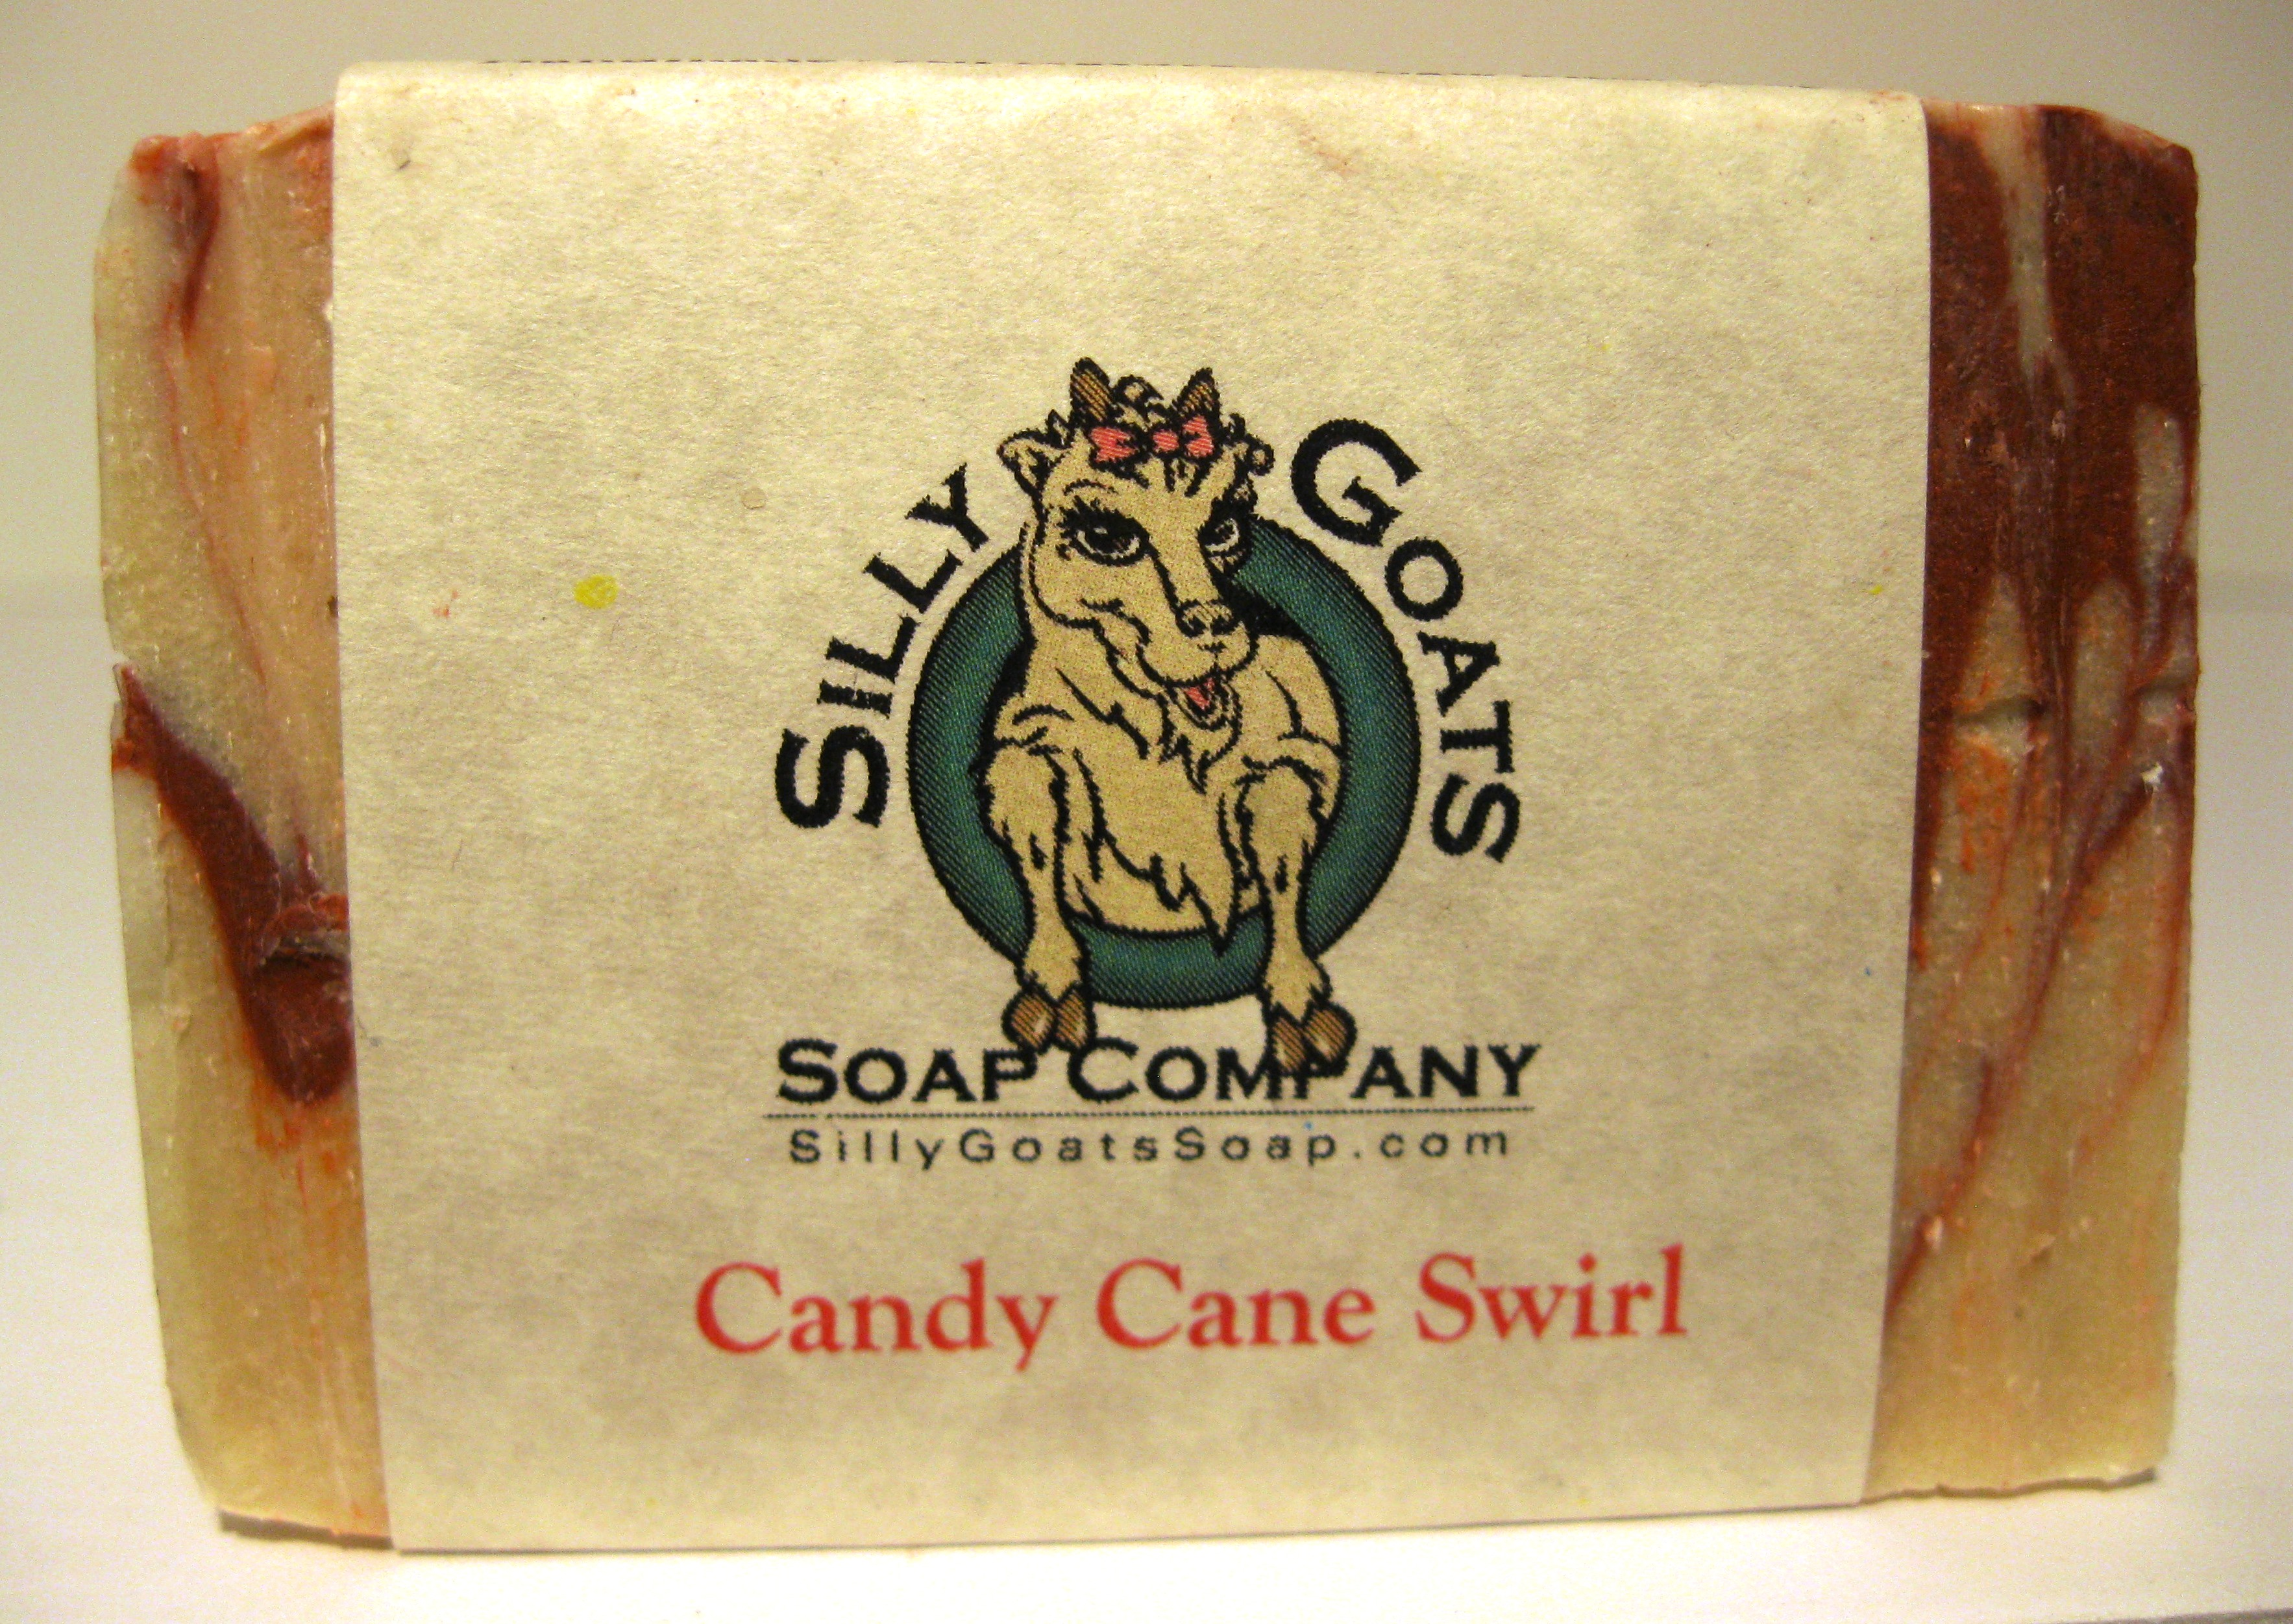 Candy cane swirl goat milk soap silly goats soap company for Peppermint swirl craft show